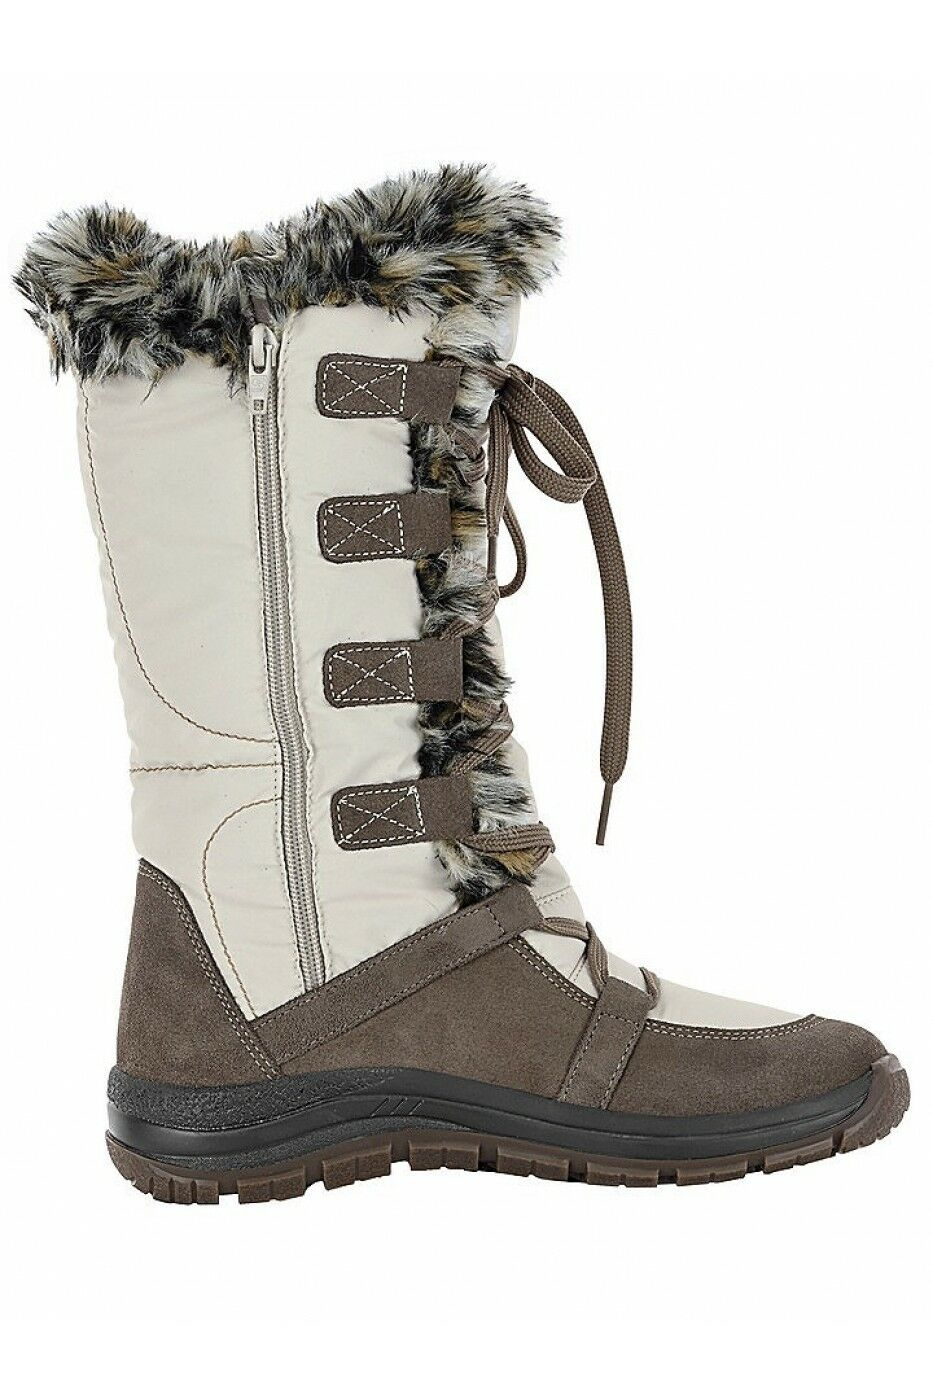 Heine Zip Up Snow Boots Cream LN181 AF 04